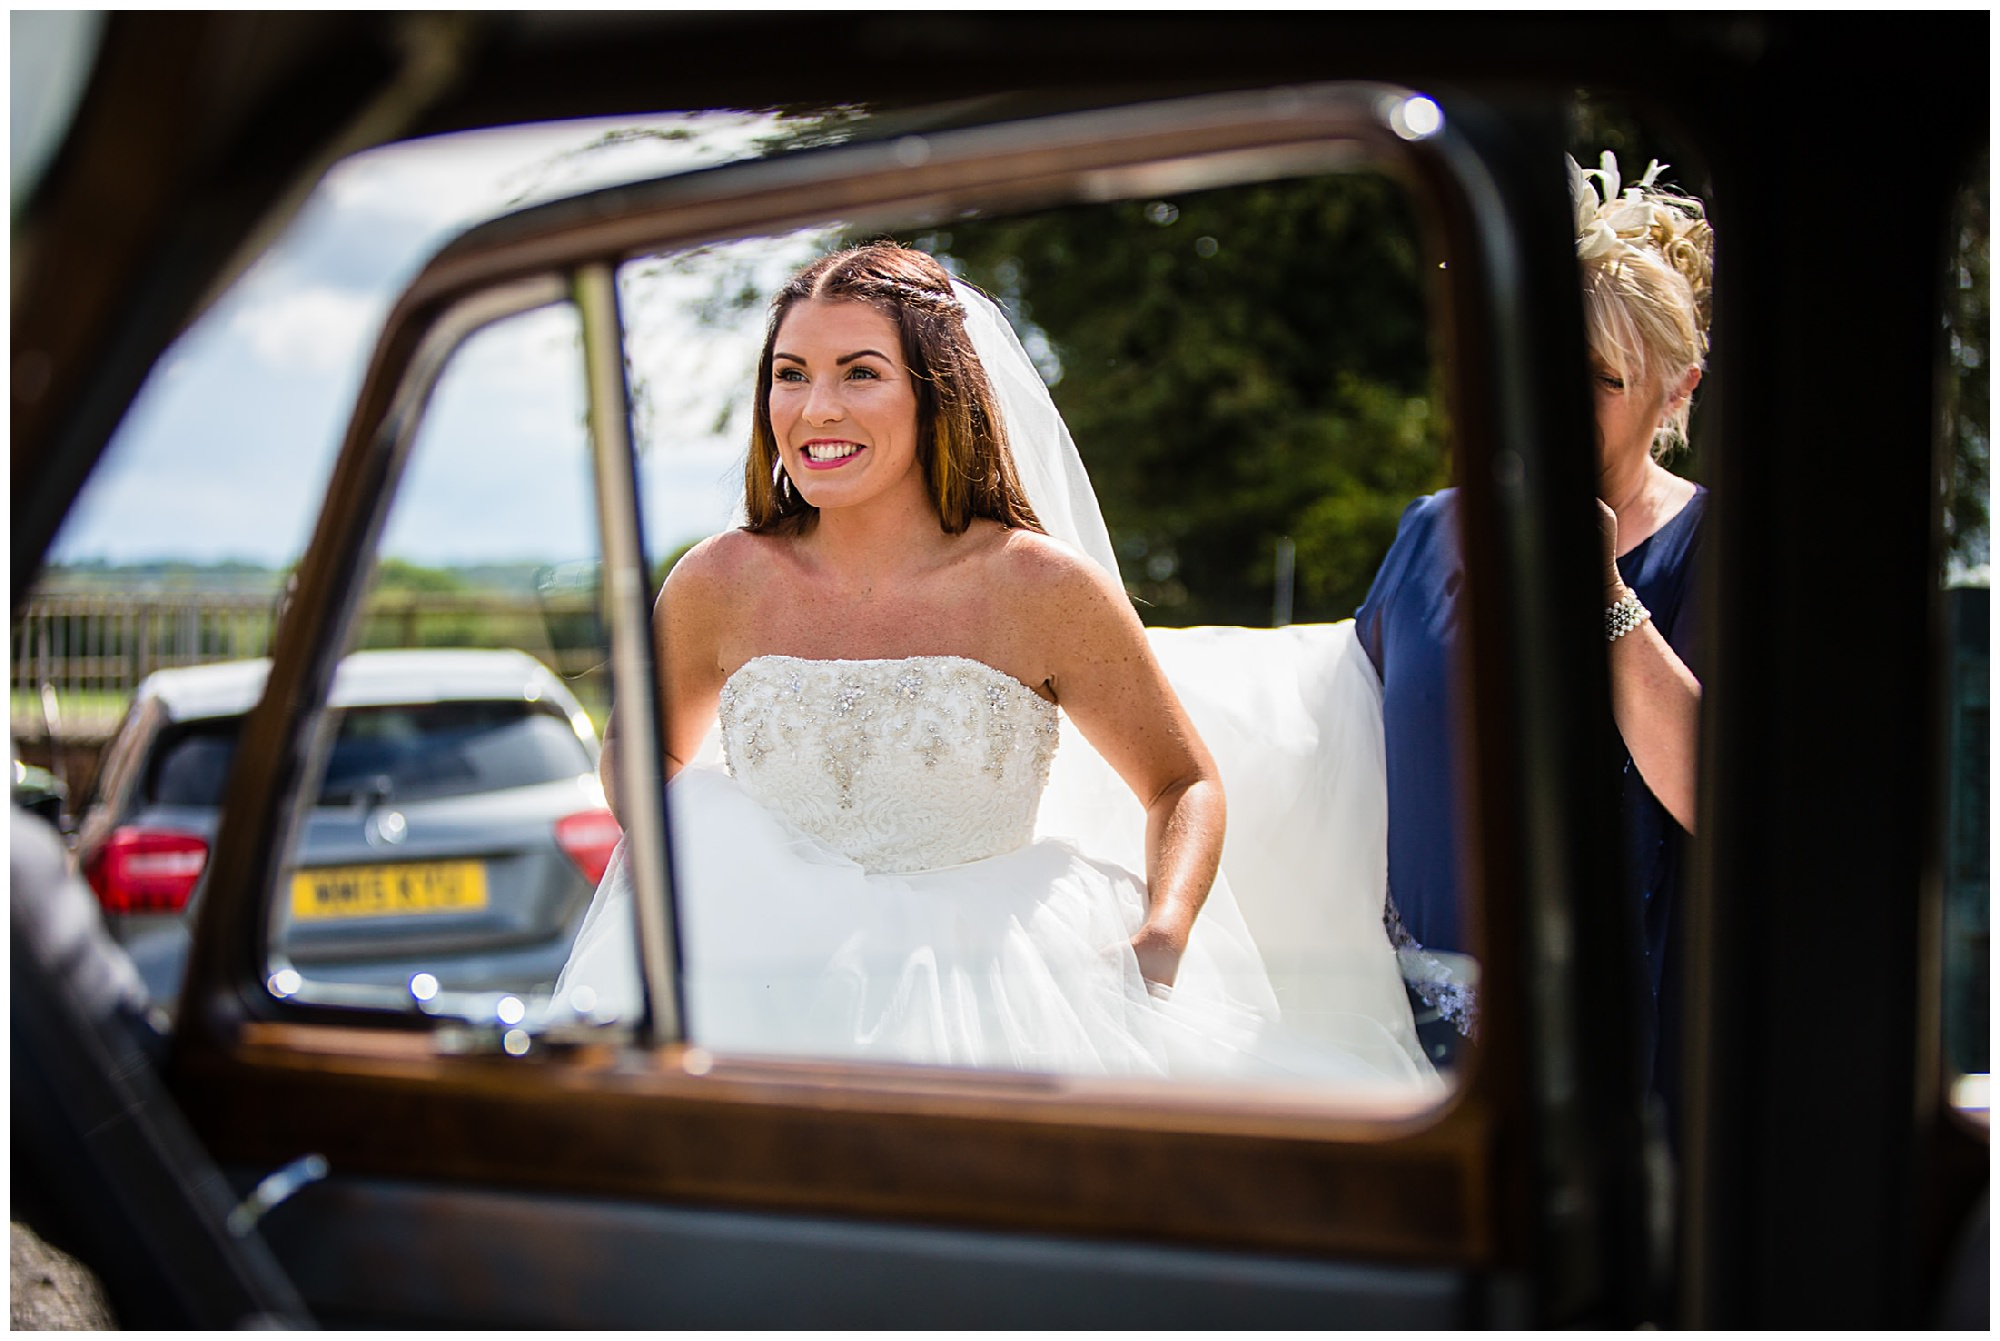 shot of bride getting into wedding car charlotte giddings photography